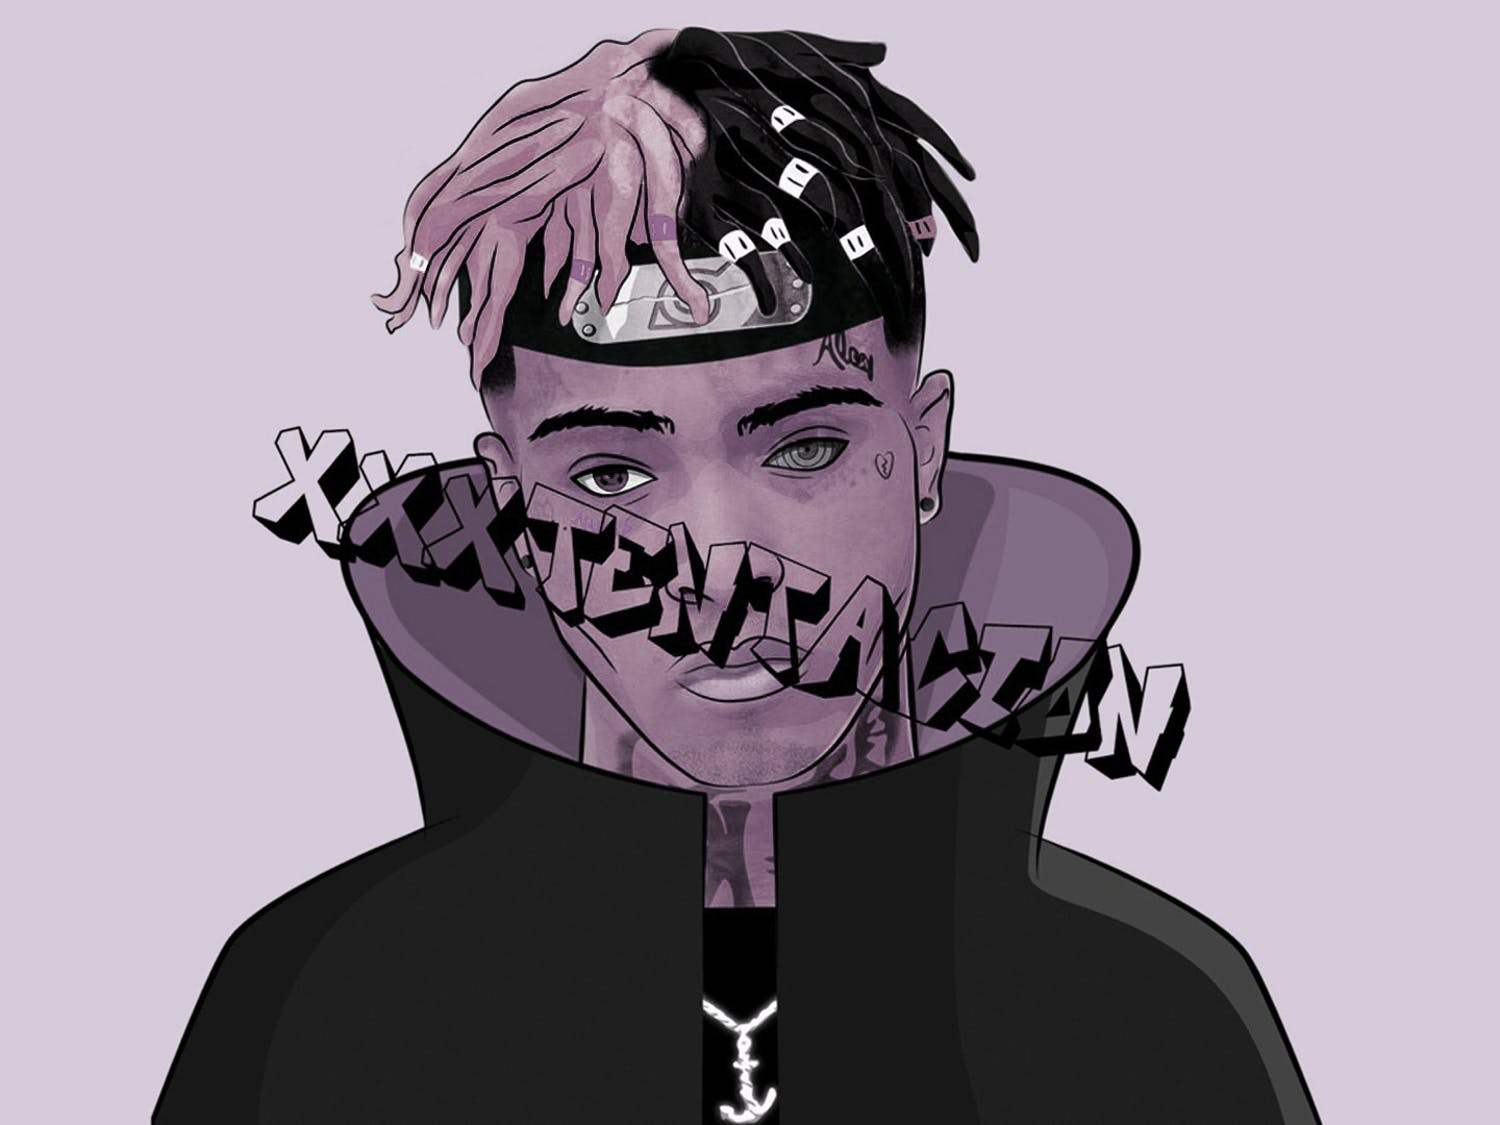 The estate of XXXTentacion, who was killed in 2018, has continued to release albums nearly two years after his death.